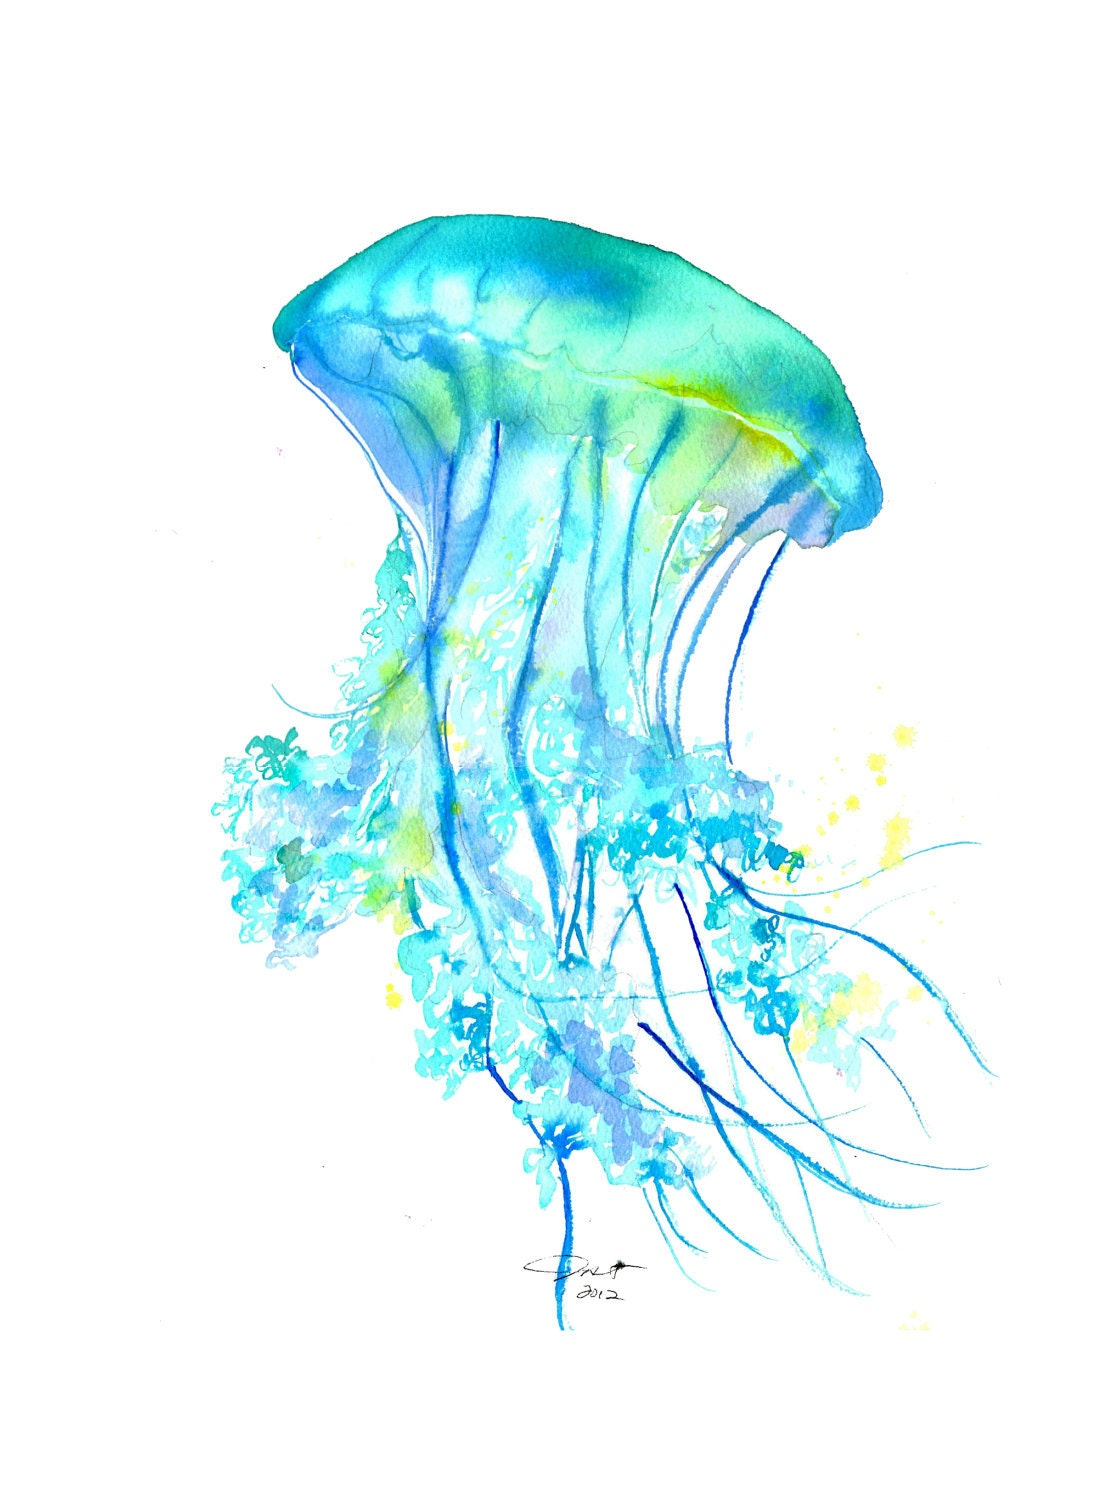 Print from original watercolor study no. 4 of a jellyfish by Jessica Durrant, titled Electric Feel